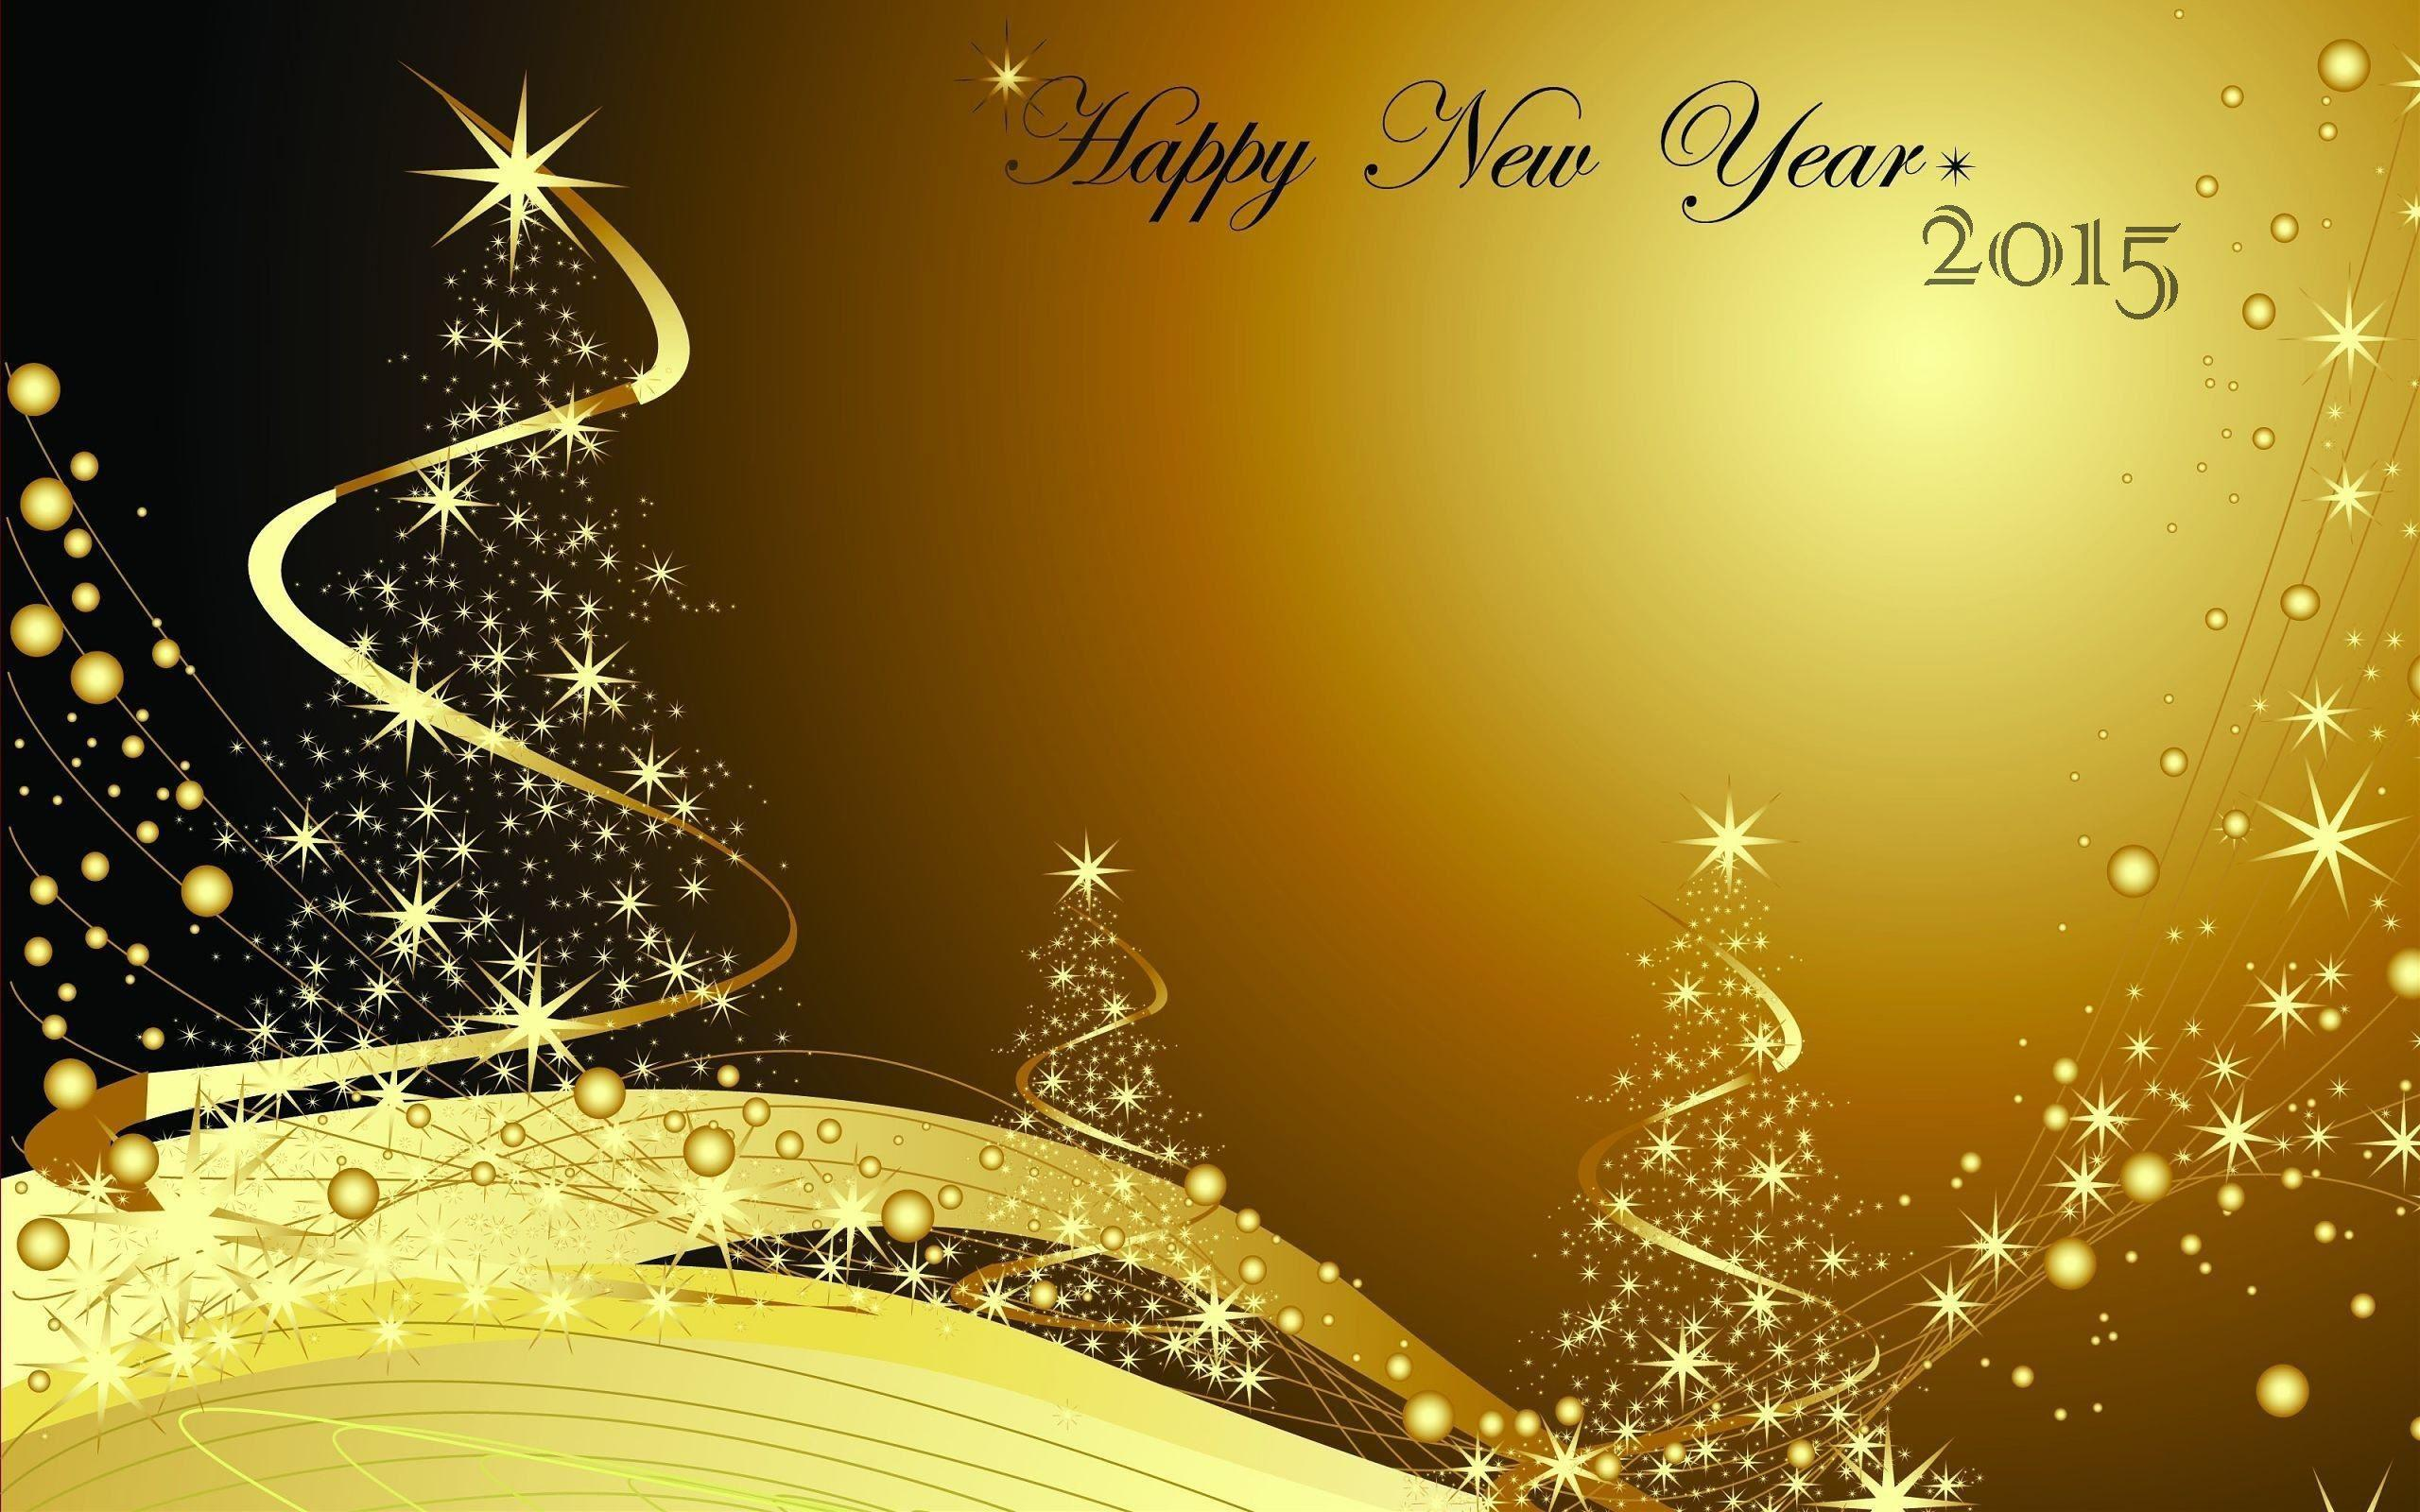 Happy New Year High Resolution Wallpaper